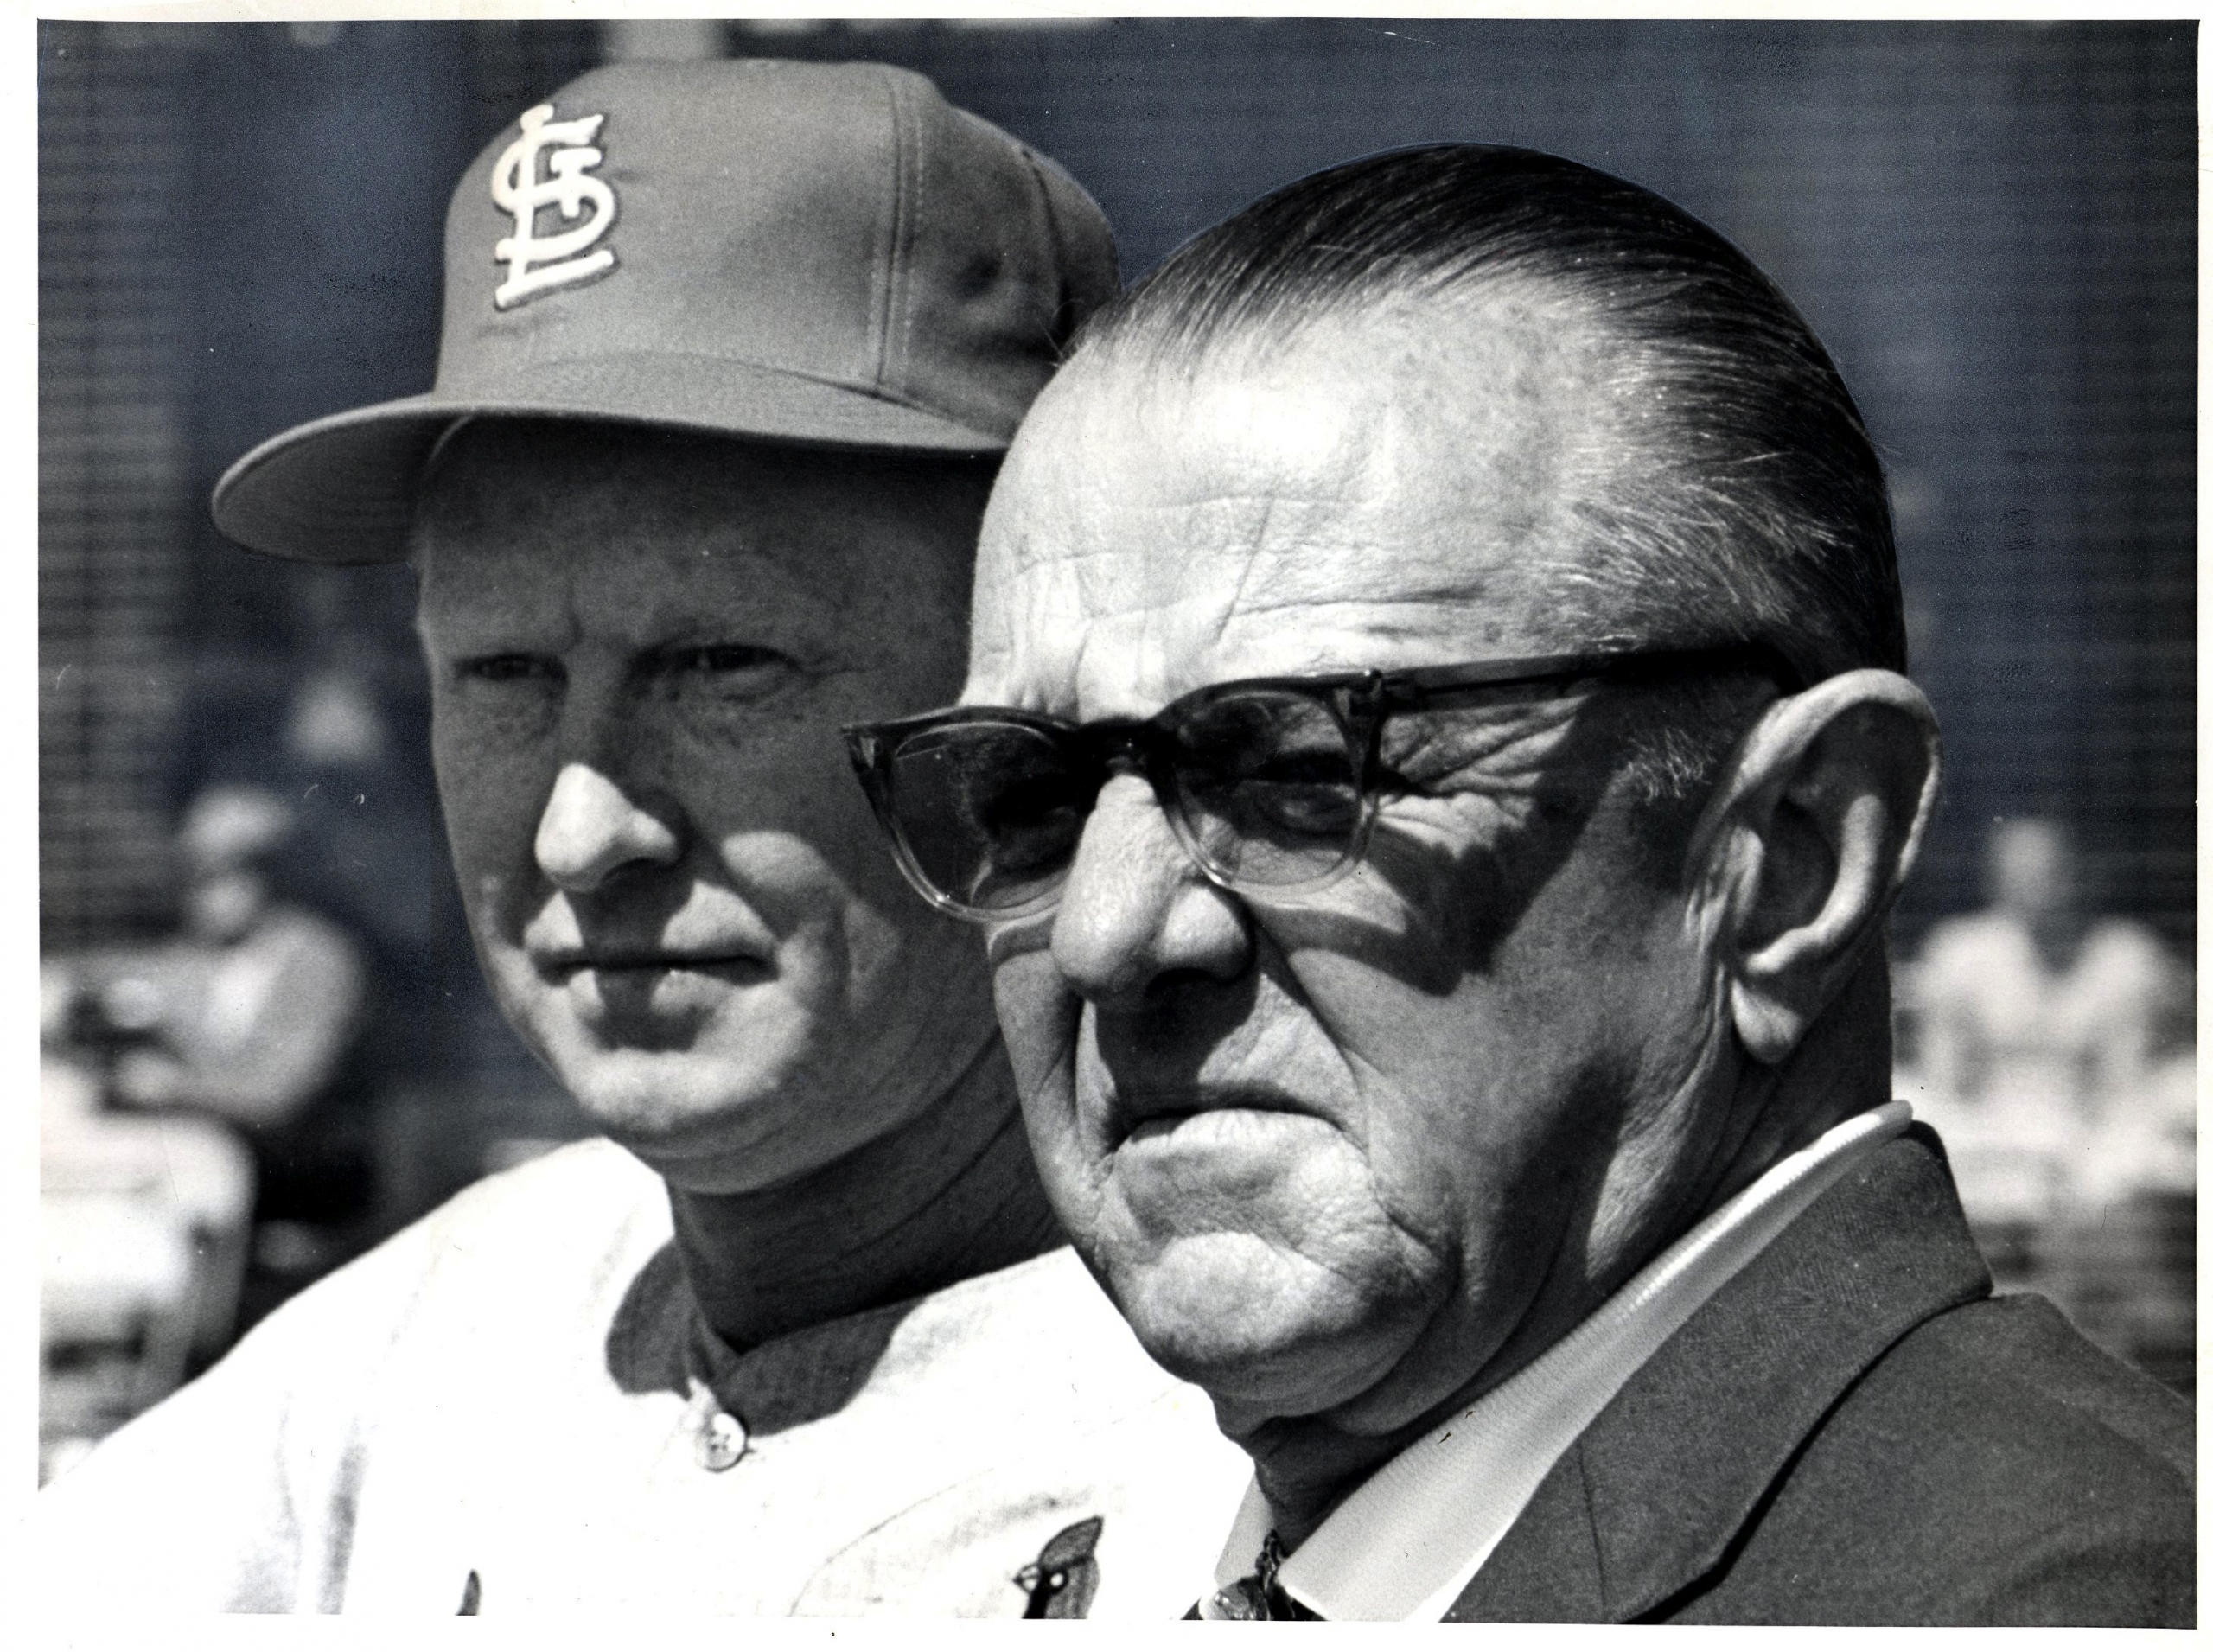 """St. Louis Cardinals owner August A. """"Gussie"""" Busch Jr., right, with manager Red Schoendienst (ST. LOUIS CARDINALS)"""